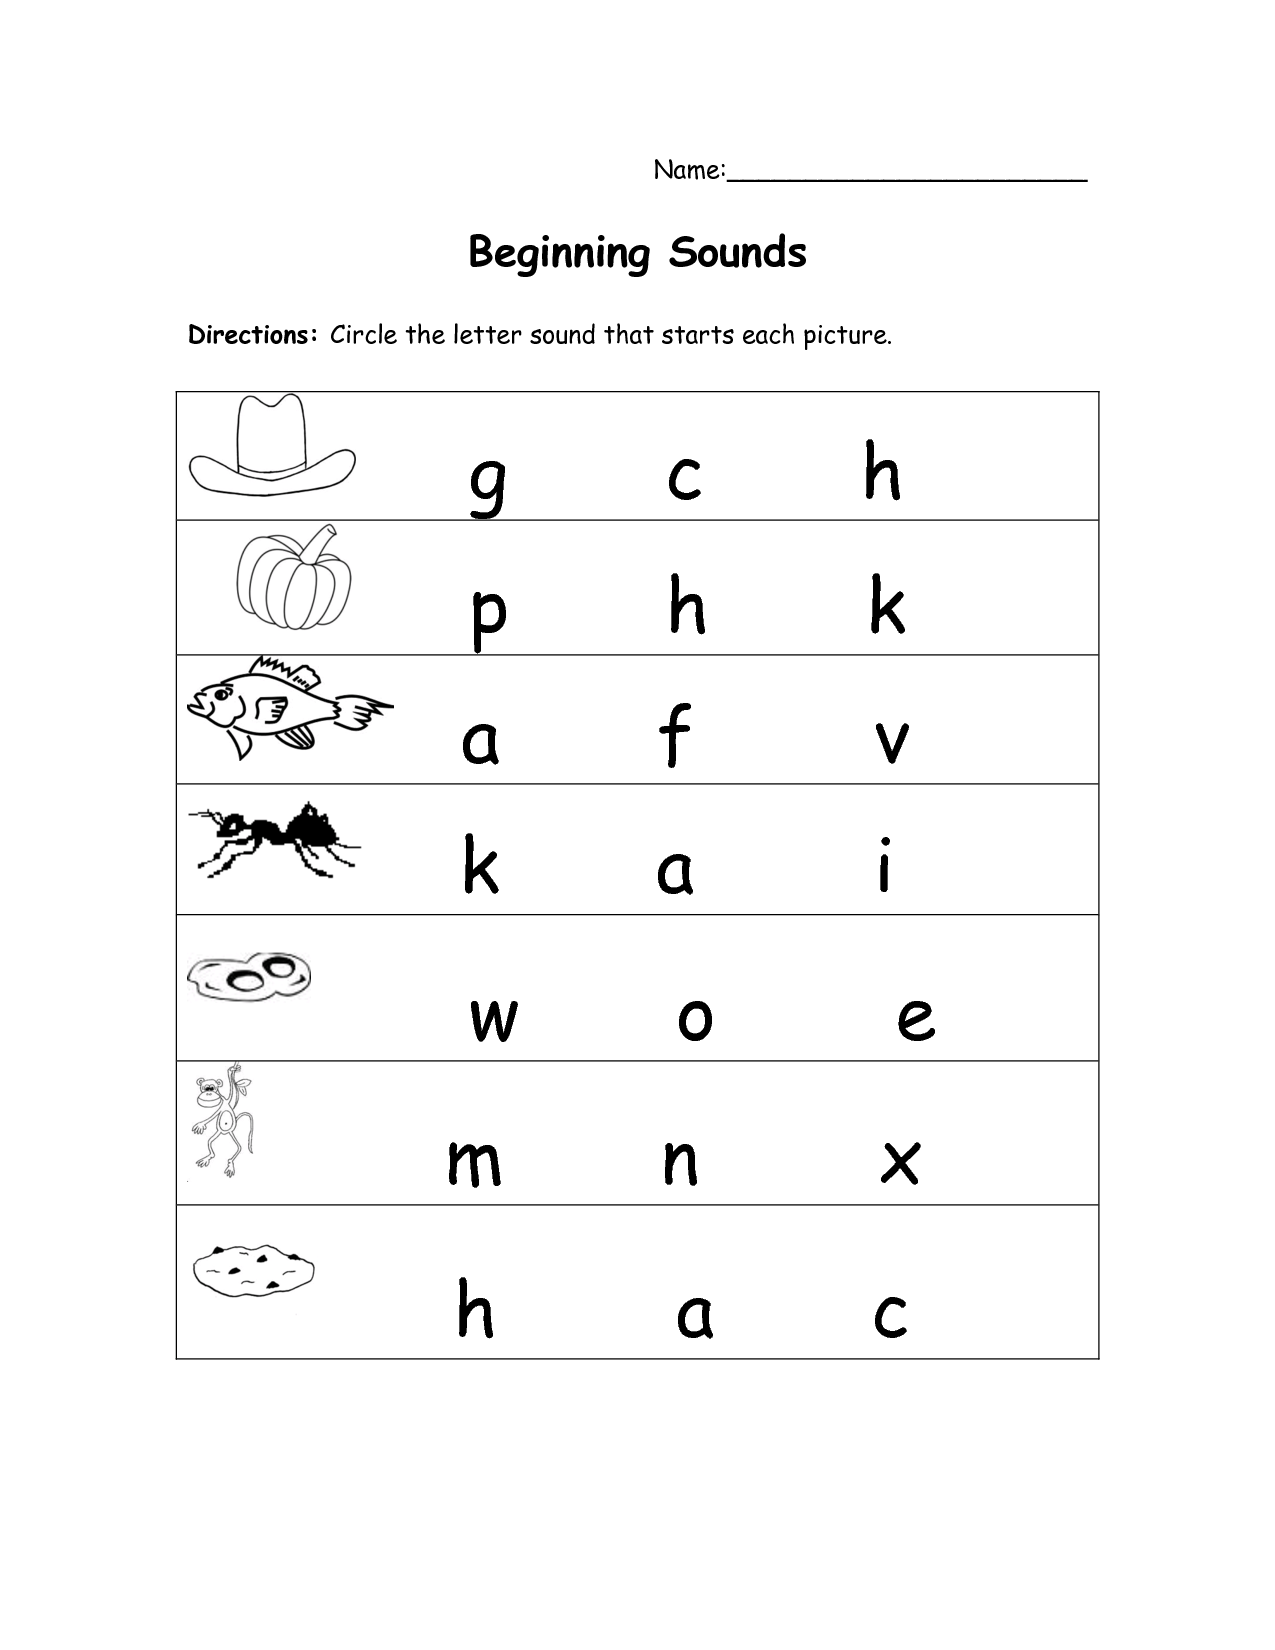 beginning sound worksheets for kindergarten Termolak – Initial Sound Worksheets for Kindergarten